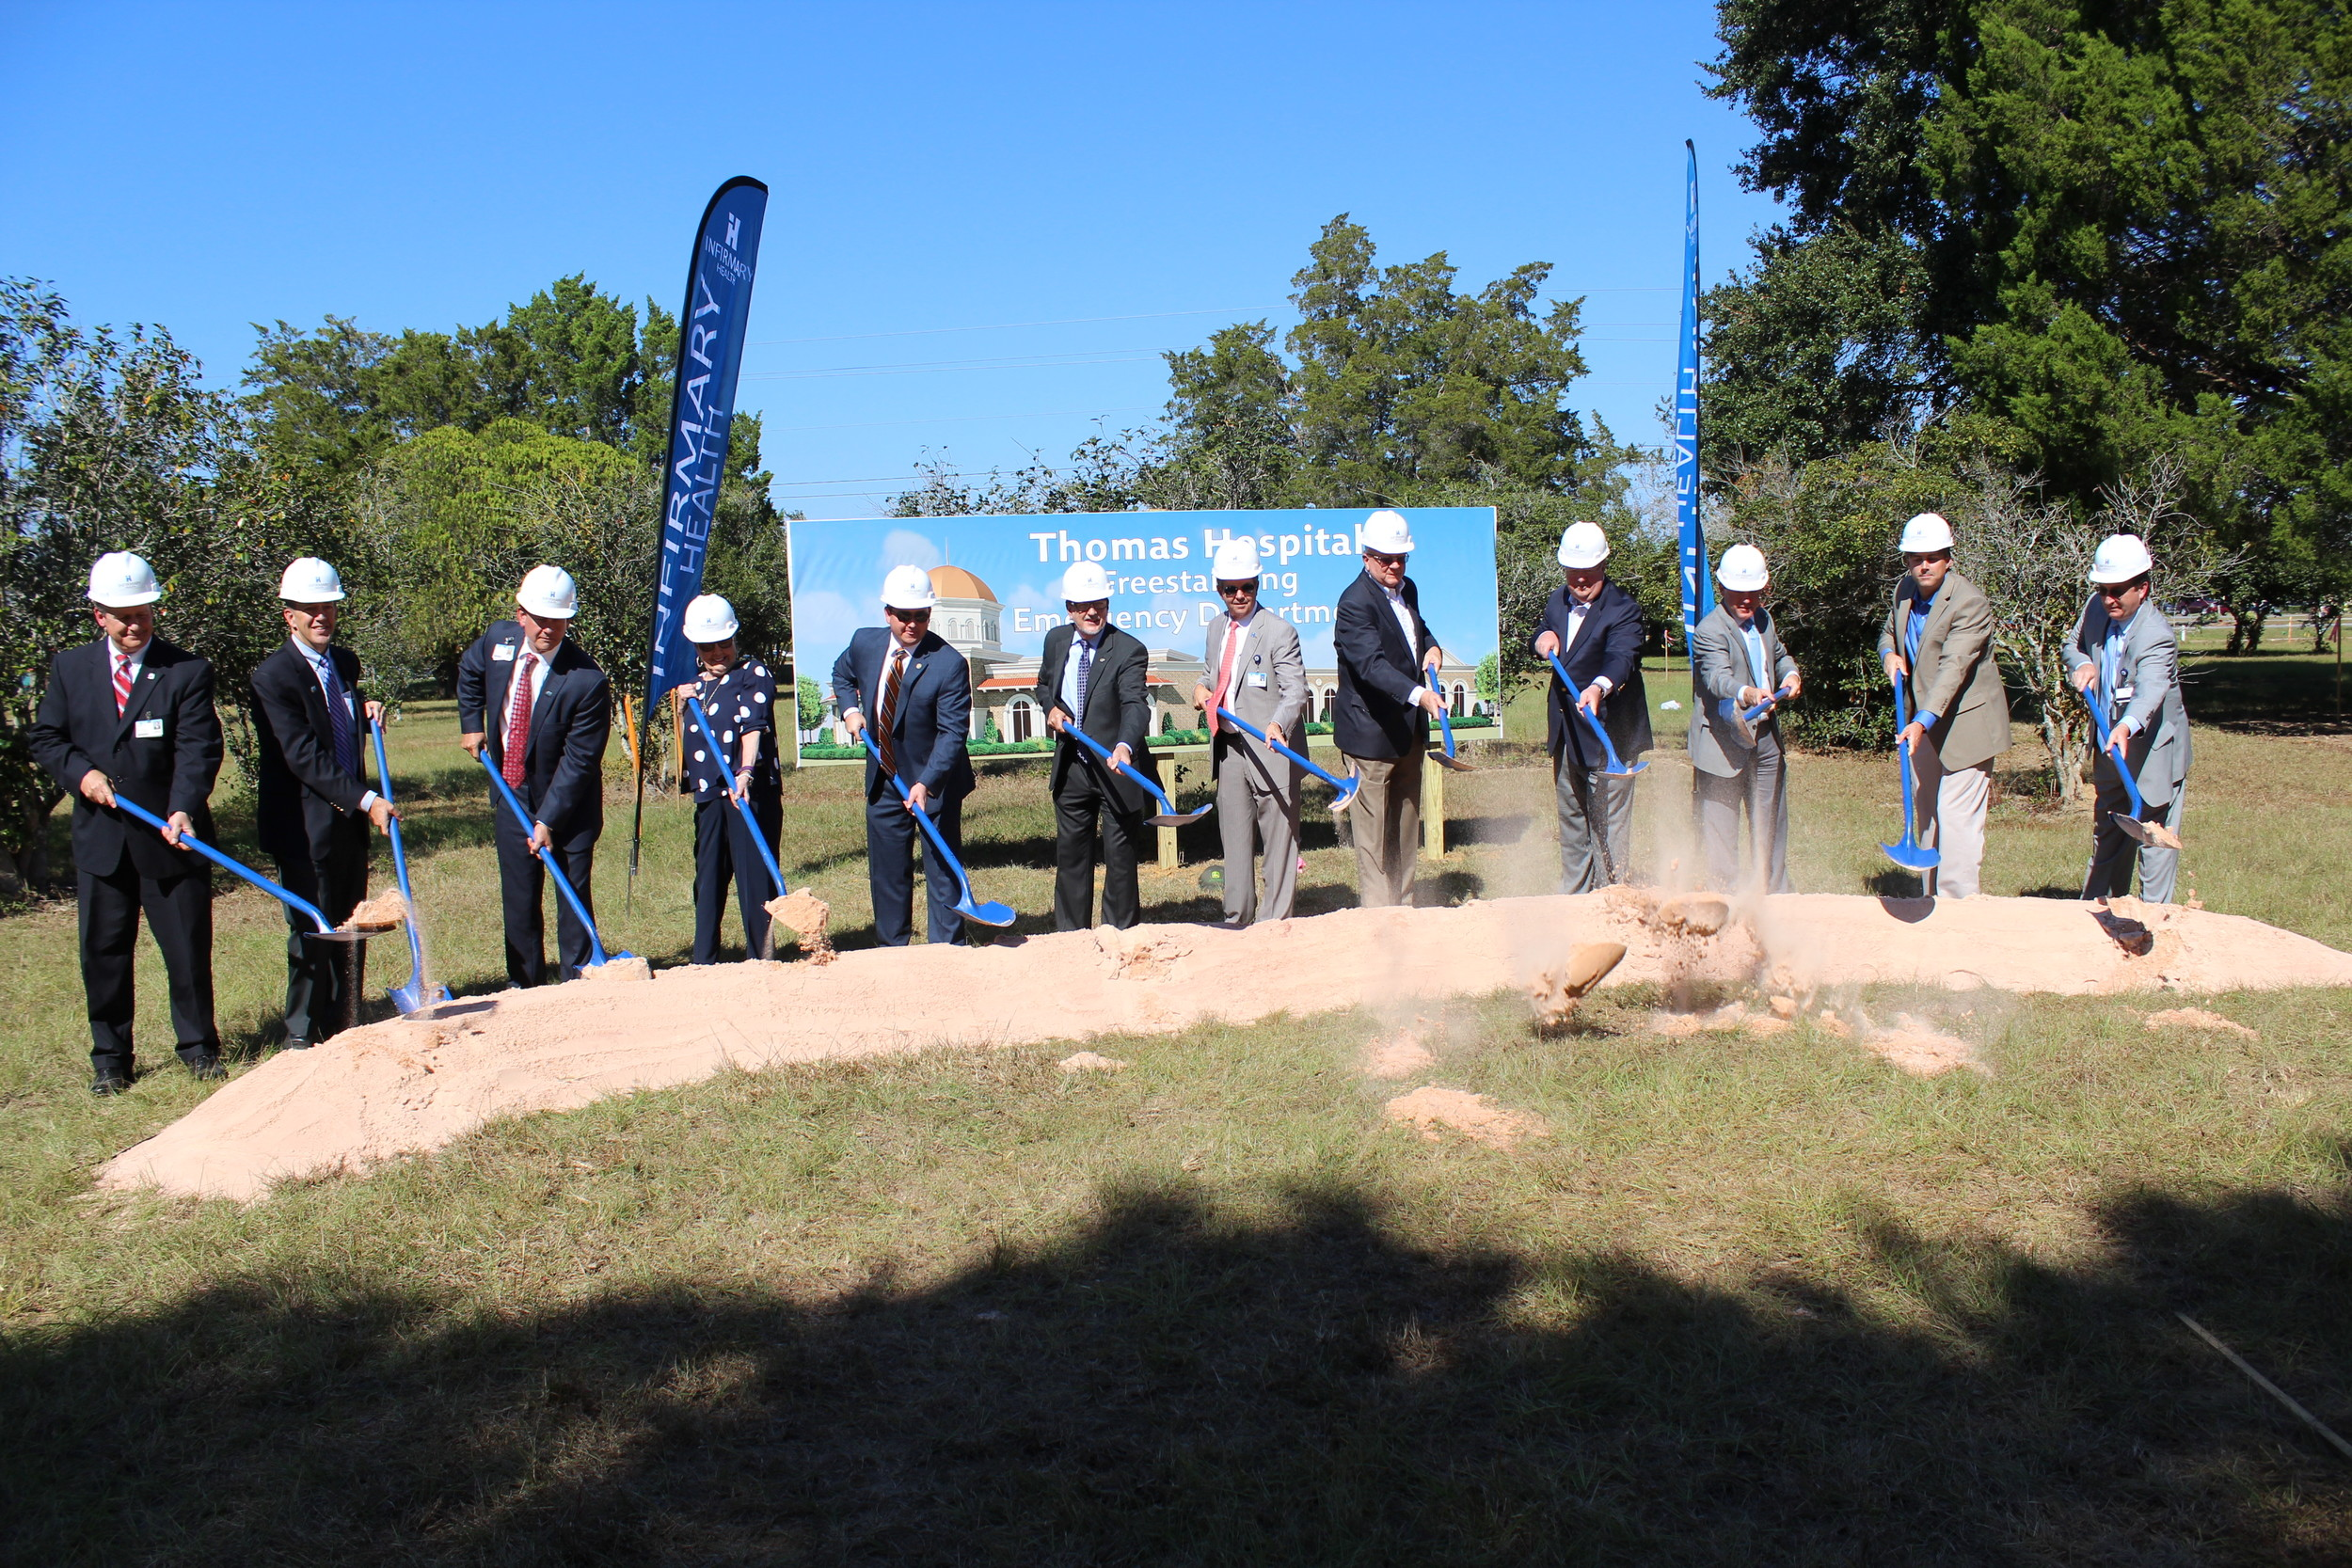 Thomas Hospital and Infirmary Health leaders, local elected officials and others help celebrate the groundbreaking ceremony for the coming freestanding emergency facility in Malbis last week.